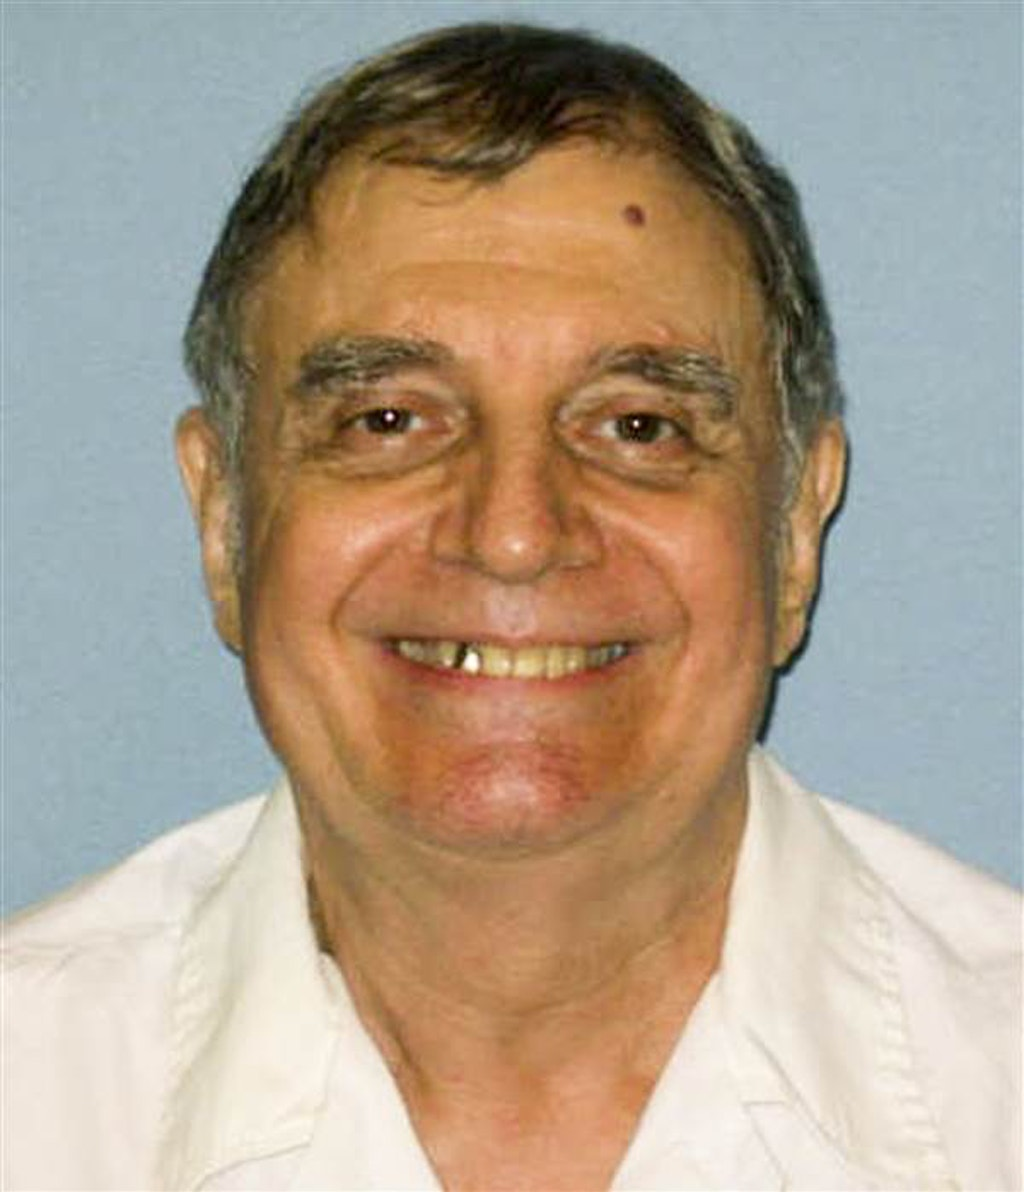 Alabama Prisoner Facing Eighth Execution Date Claims Innocence, Challenges Execution Procedures